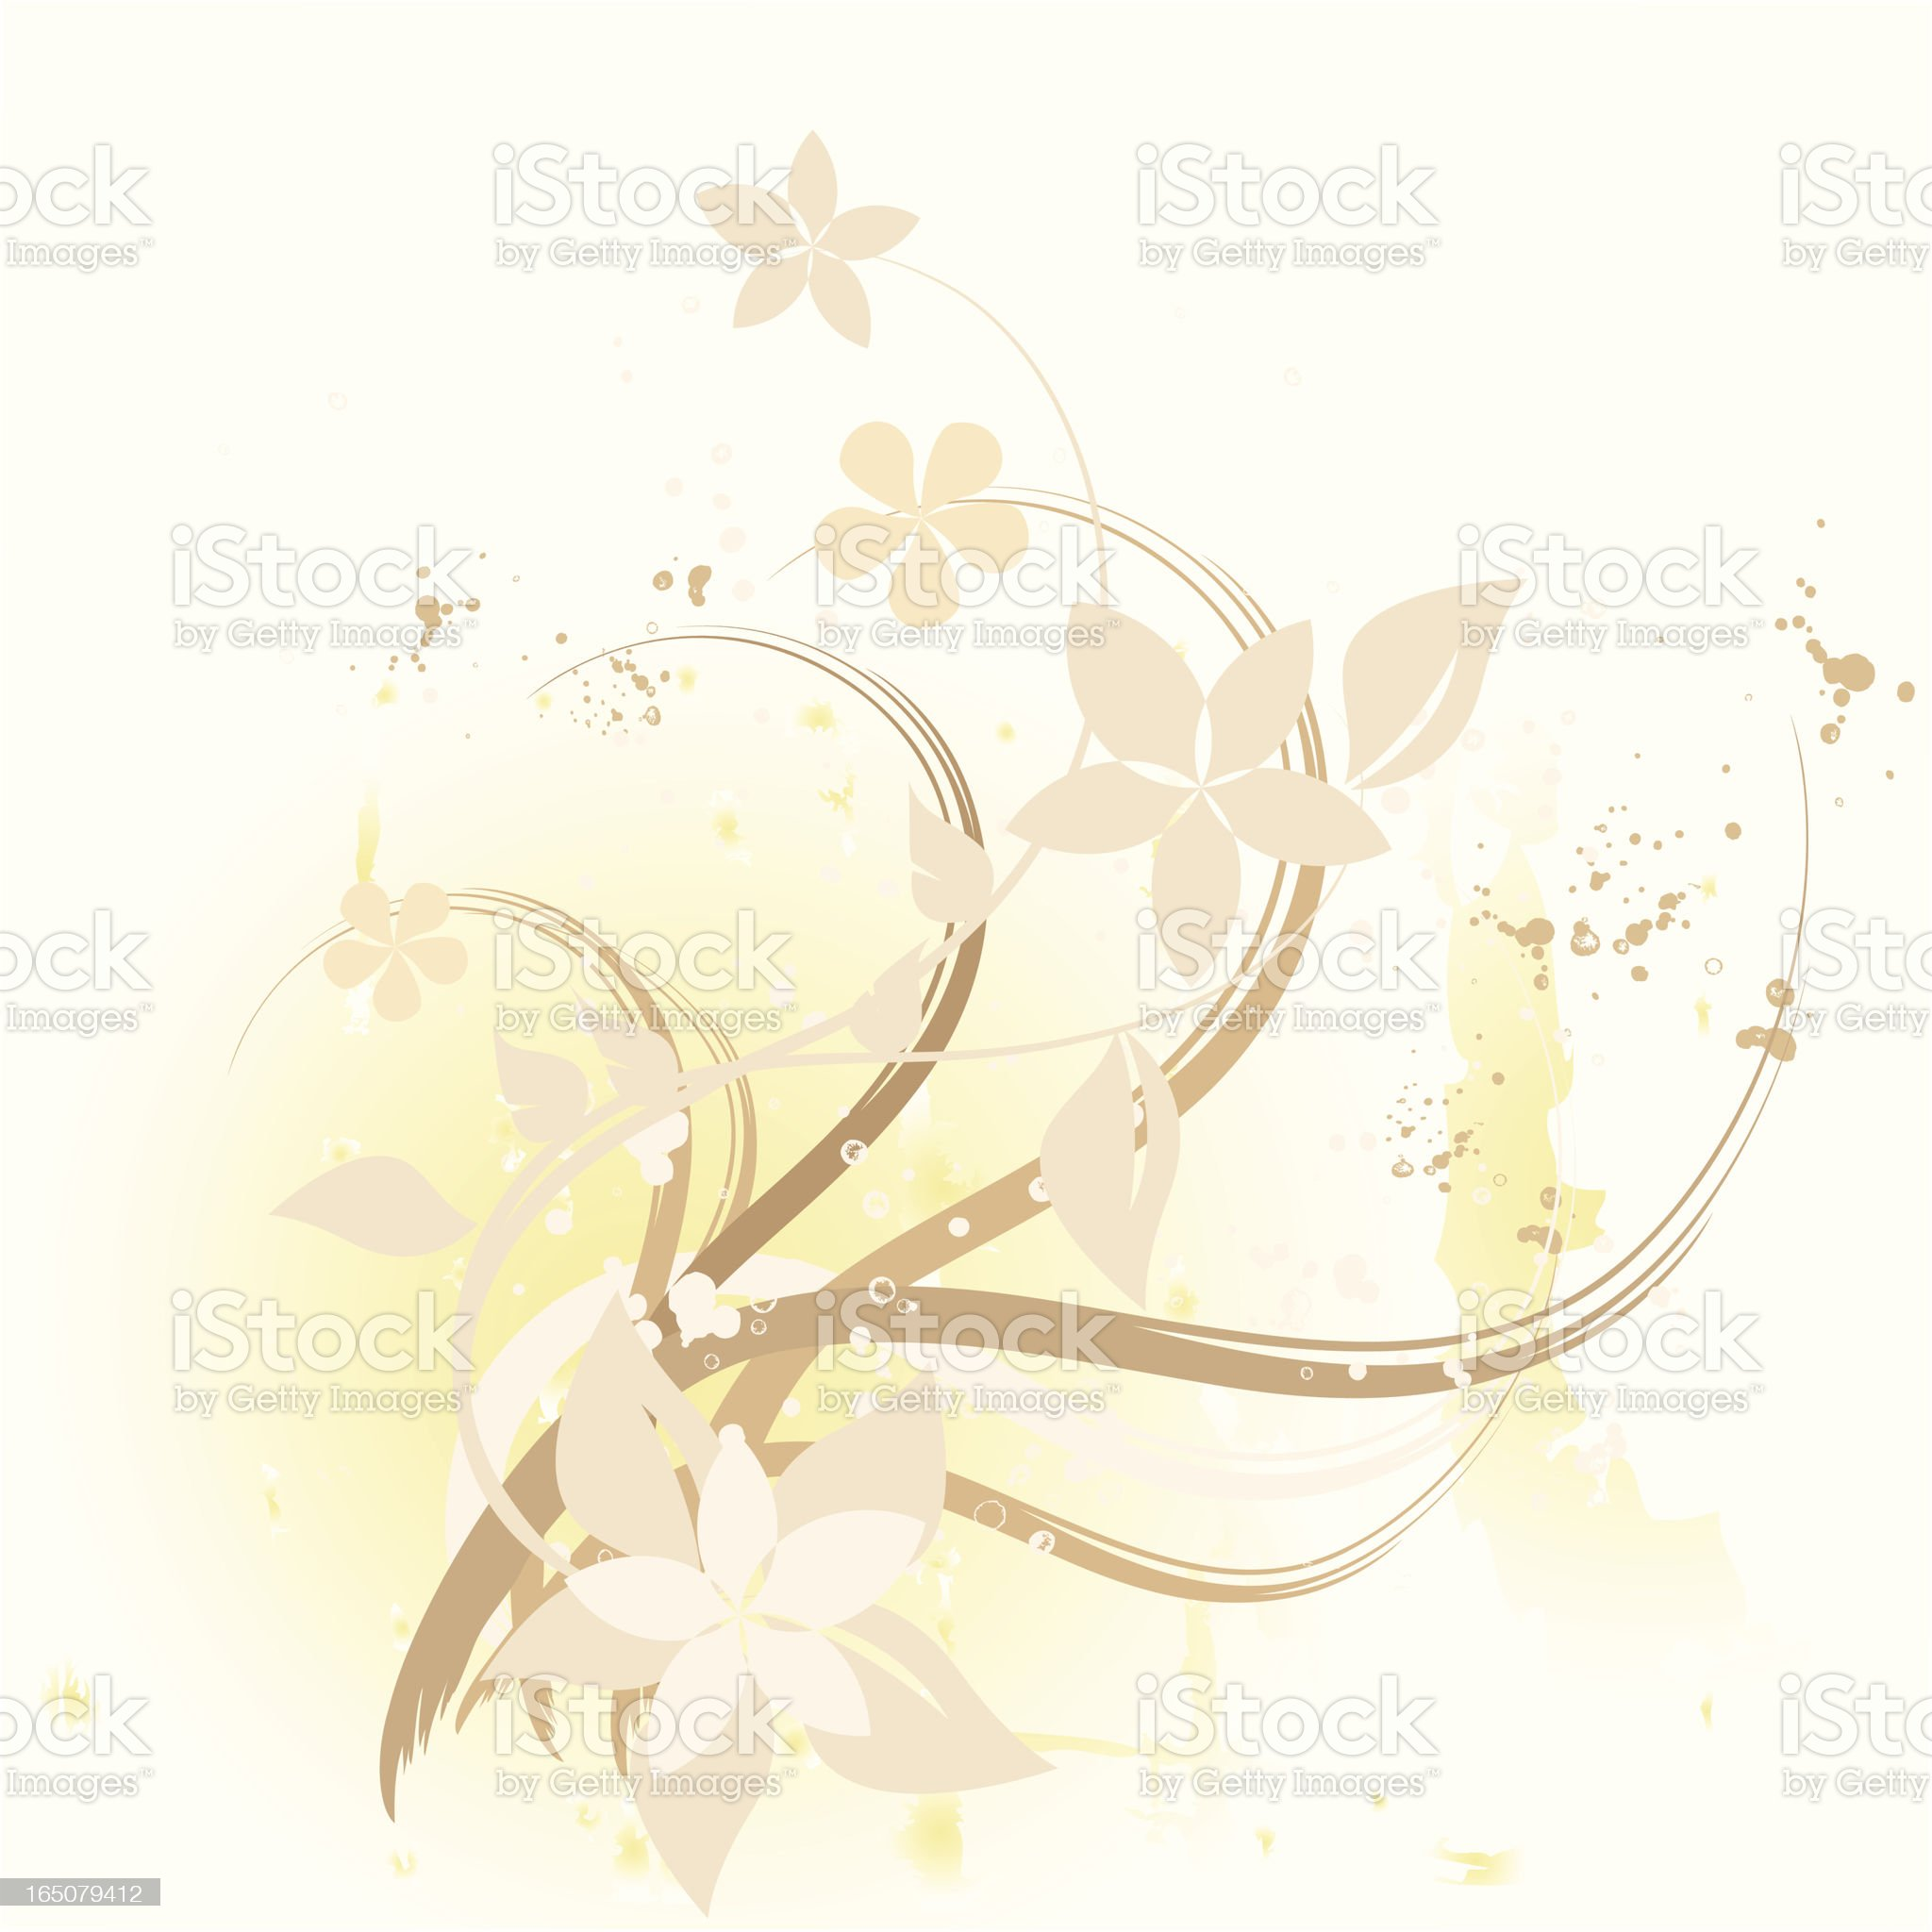 Beige floral royalty-free stock vector art